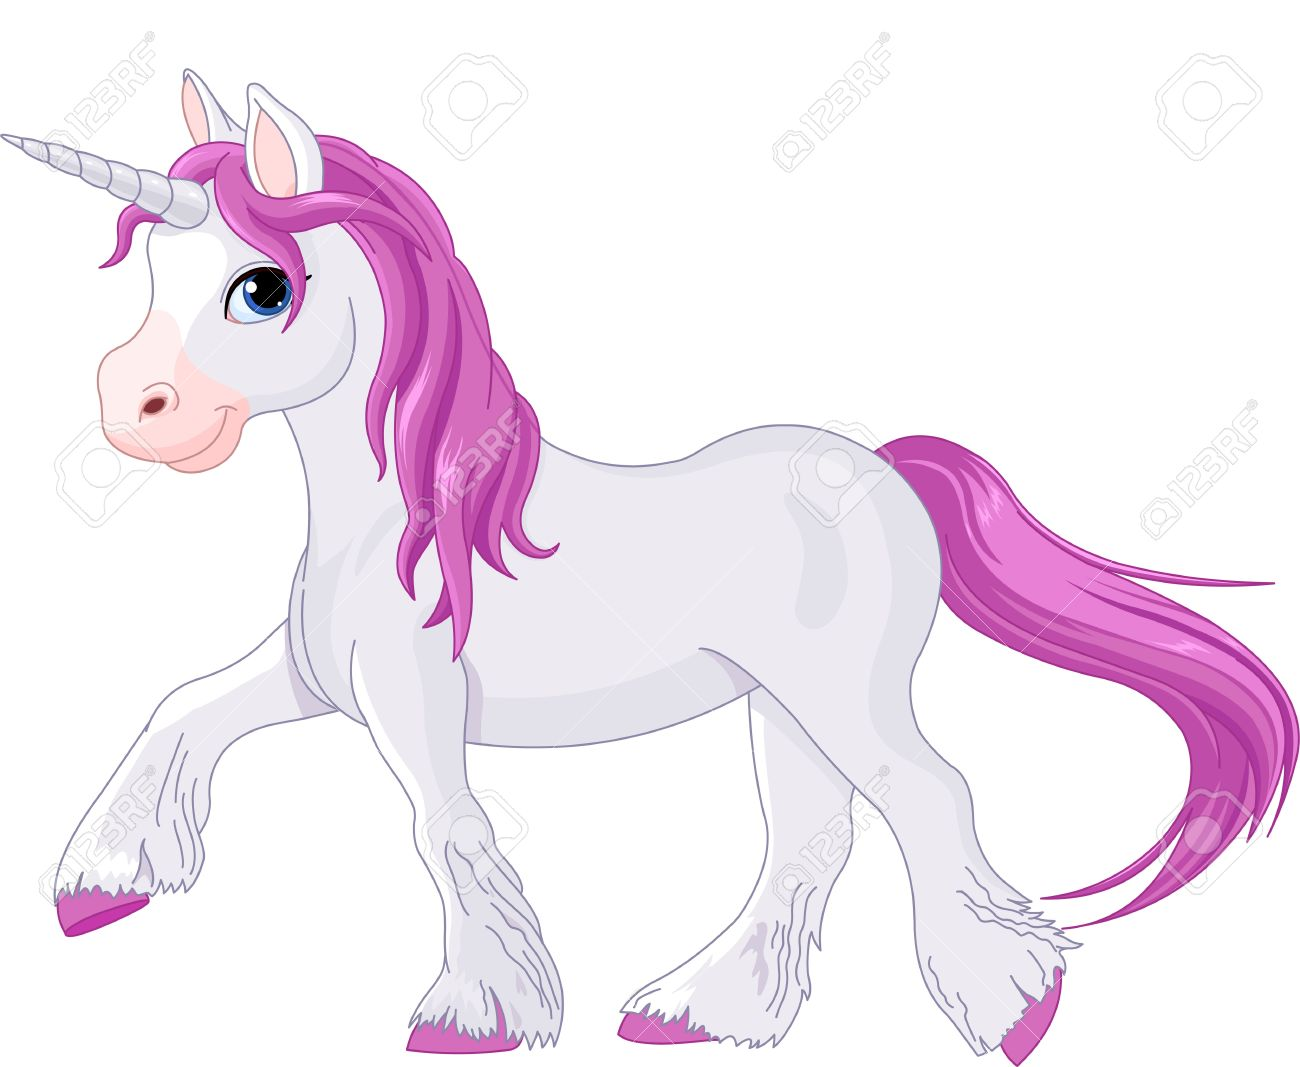 poney illustration de licorne va tranquillement